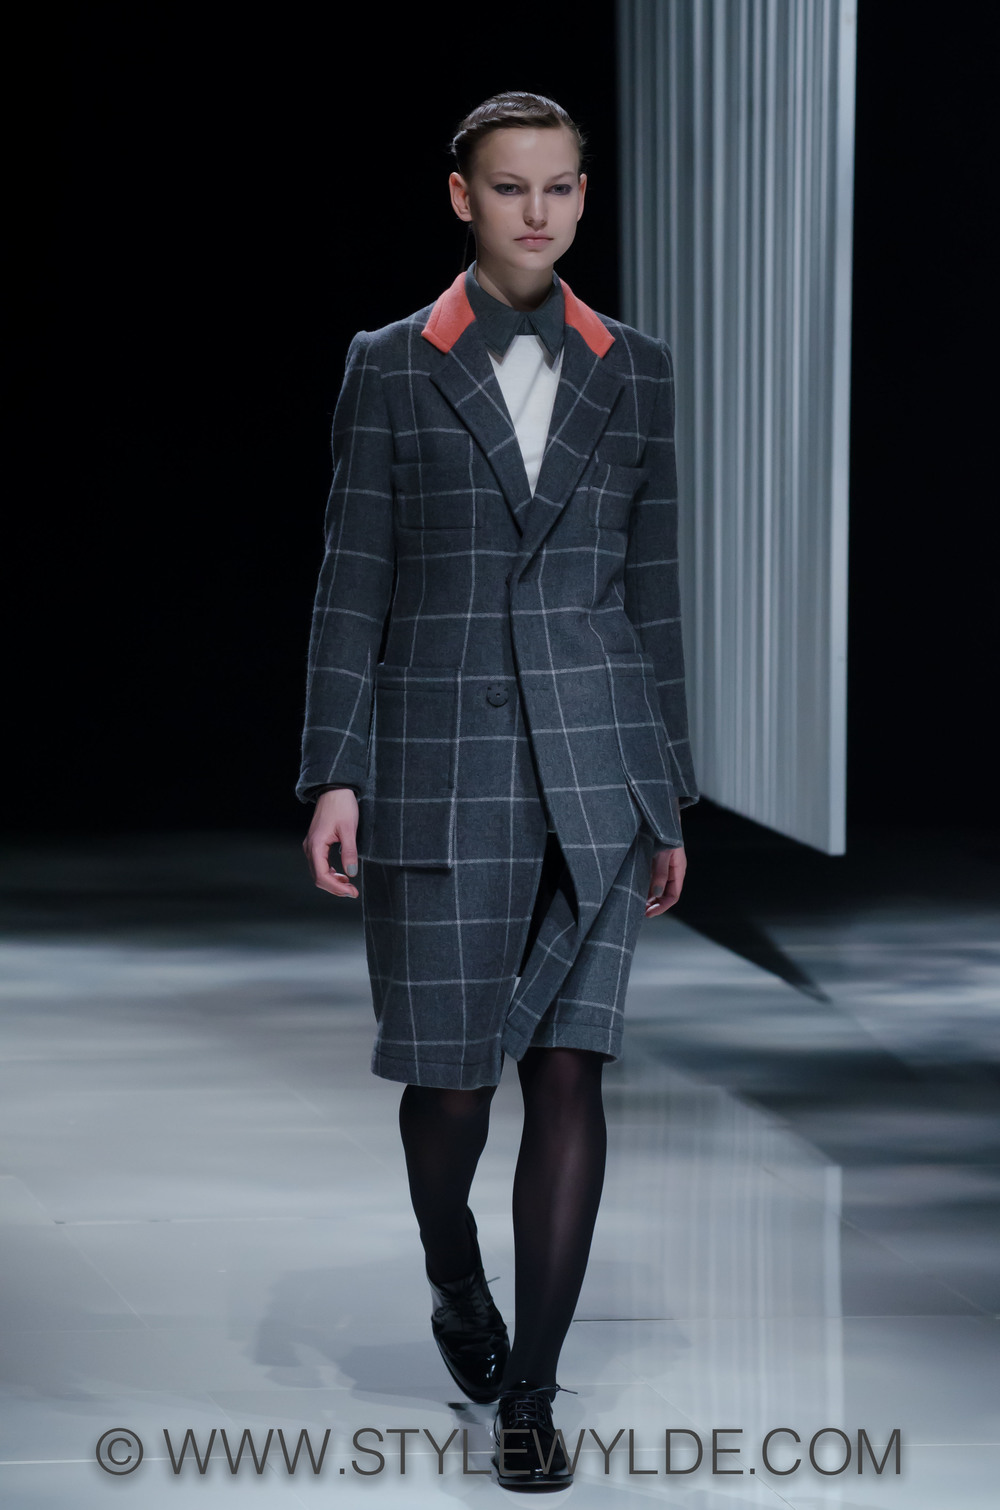 StyleWylde_Ujoh_AW14_story (1 of 1).jpg